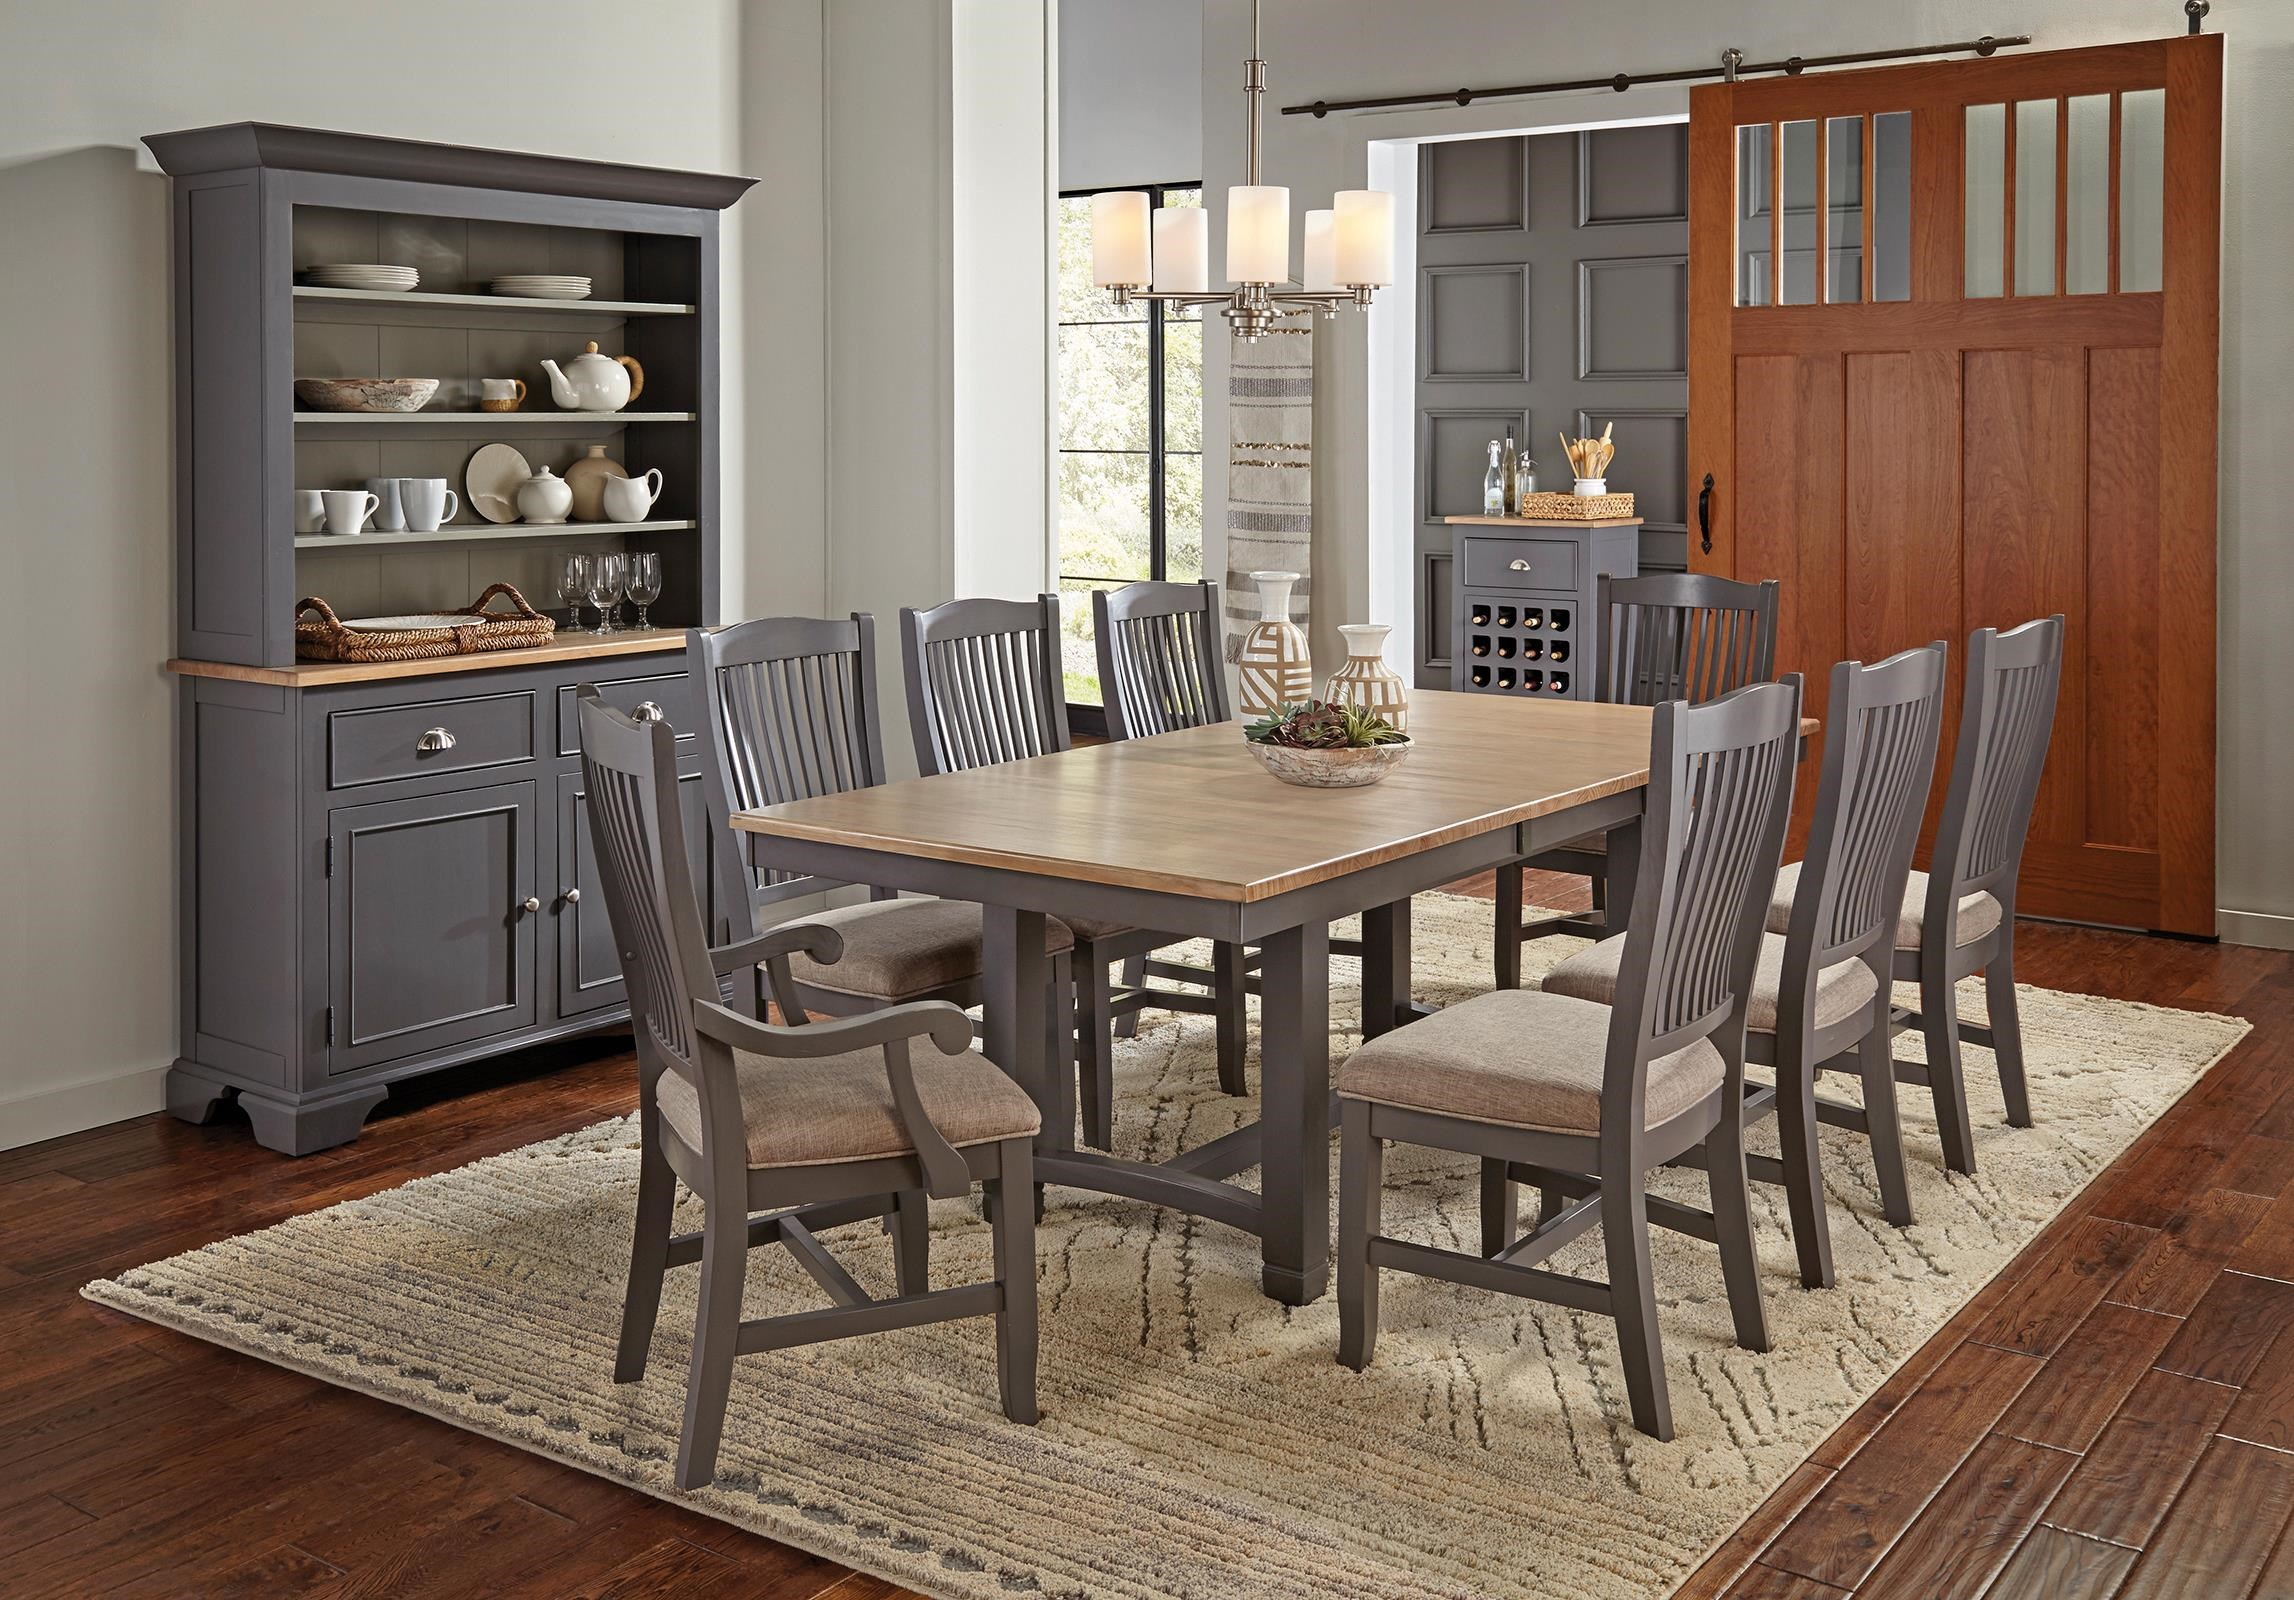 Port Townsend Trestle Table, 4 Side Chairs, 2 Arm Chairs by AAmerica at Johnny Janosik